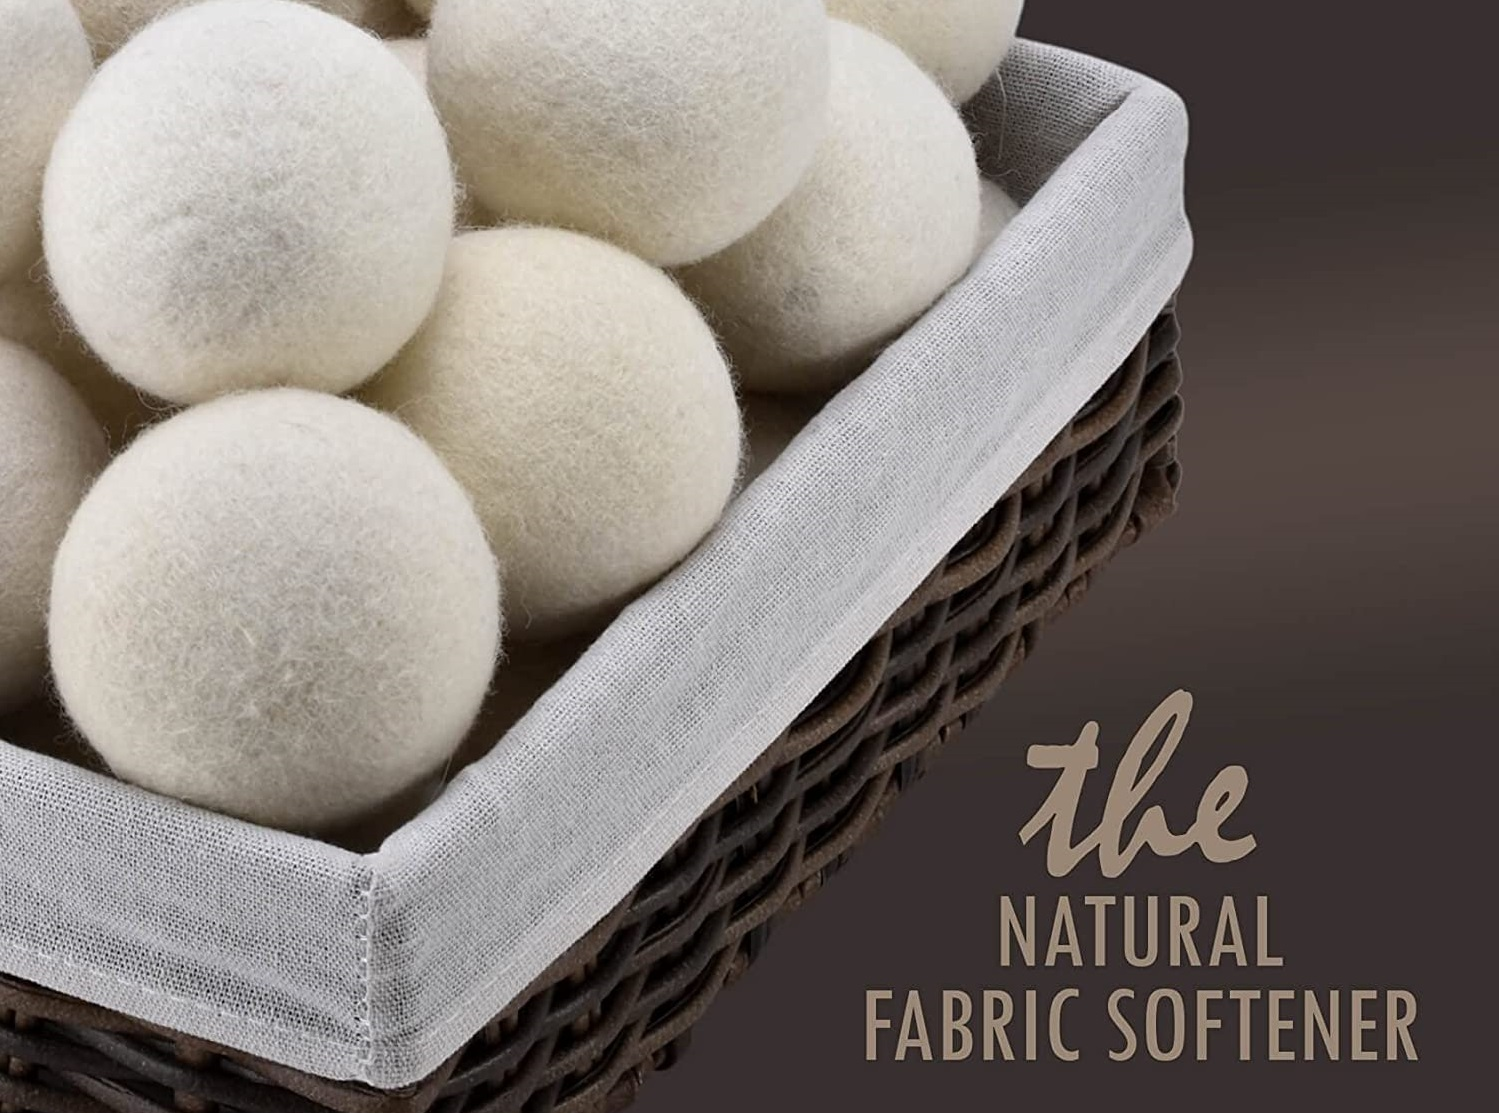 dryer balls are better for the environment than dryer sheets